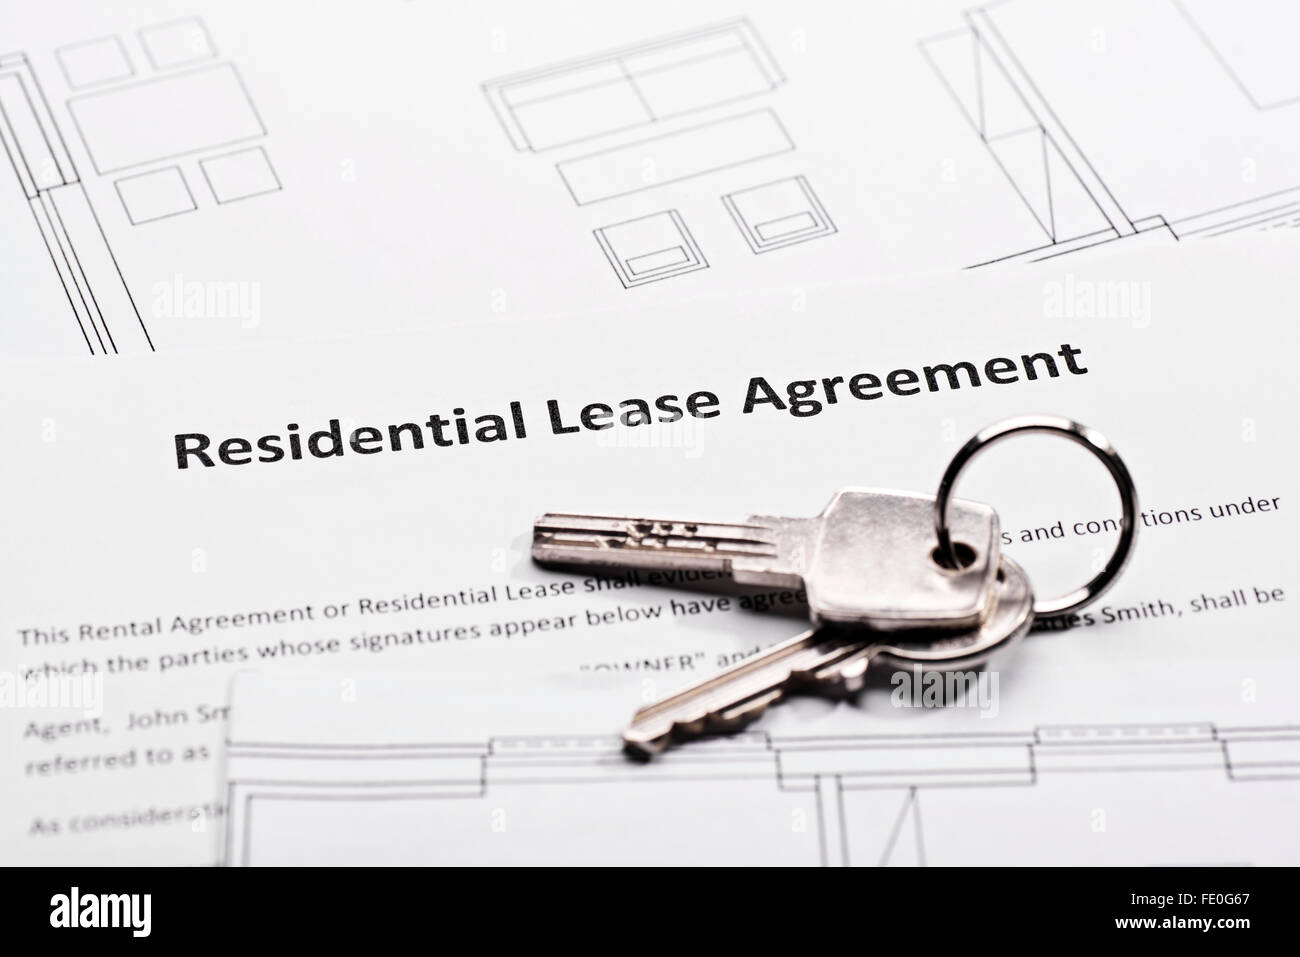 Residential lease agreement - Stock Image